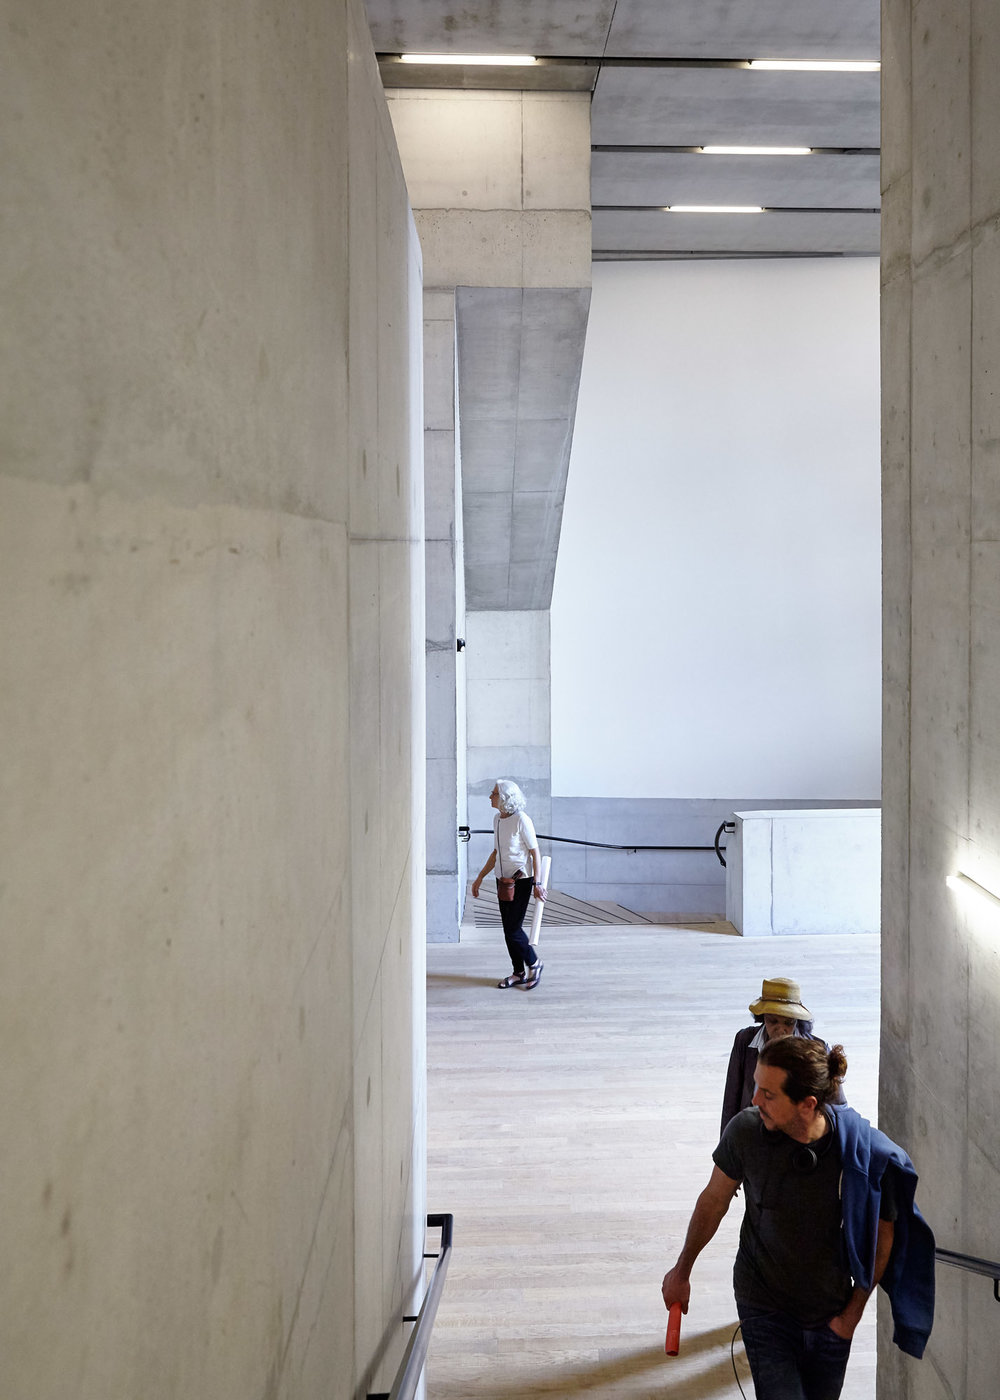 TATE MODERN PROJECT, LONDON: HERZOG & DE MEURON